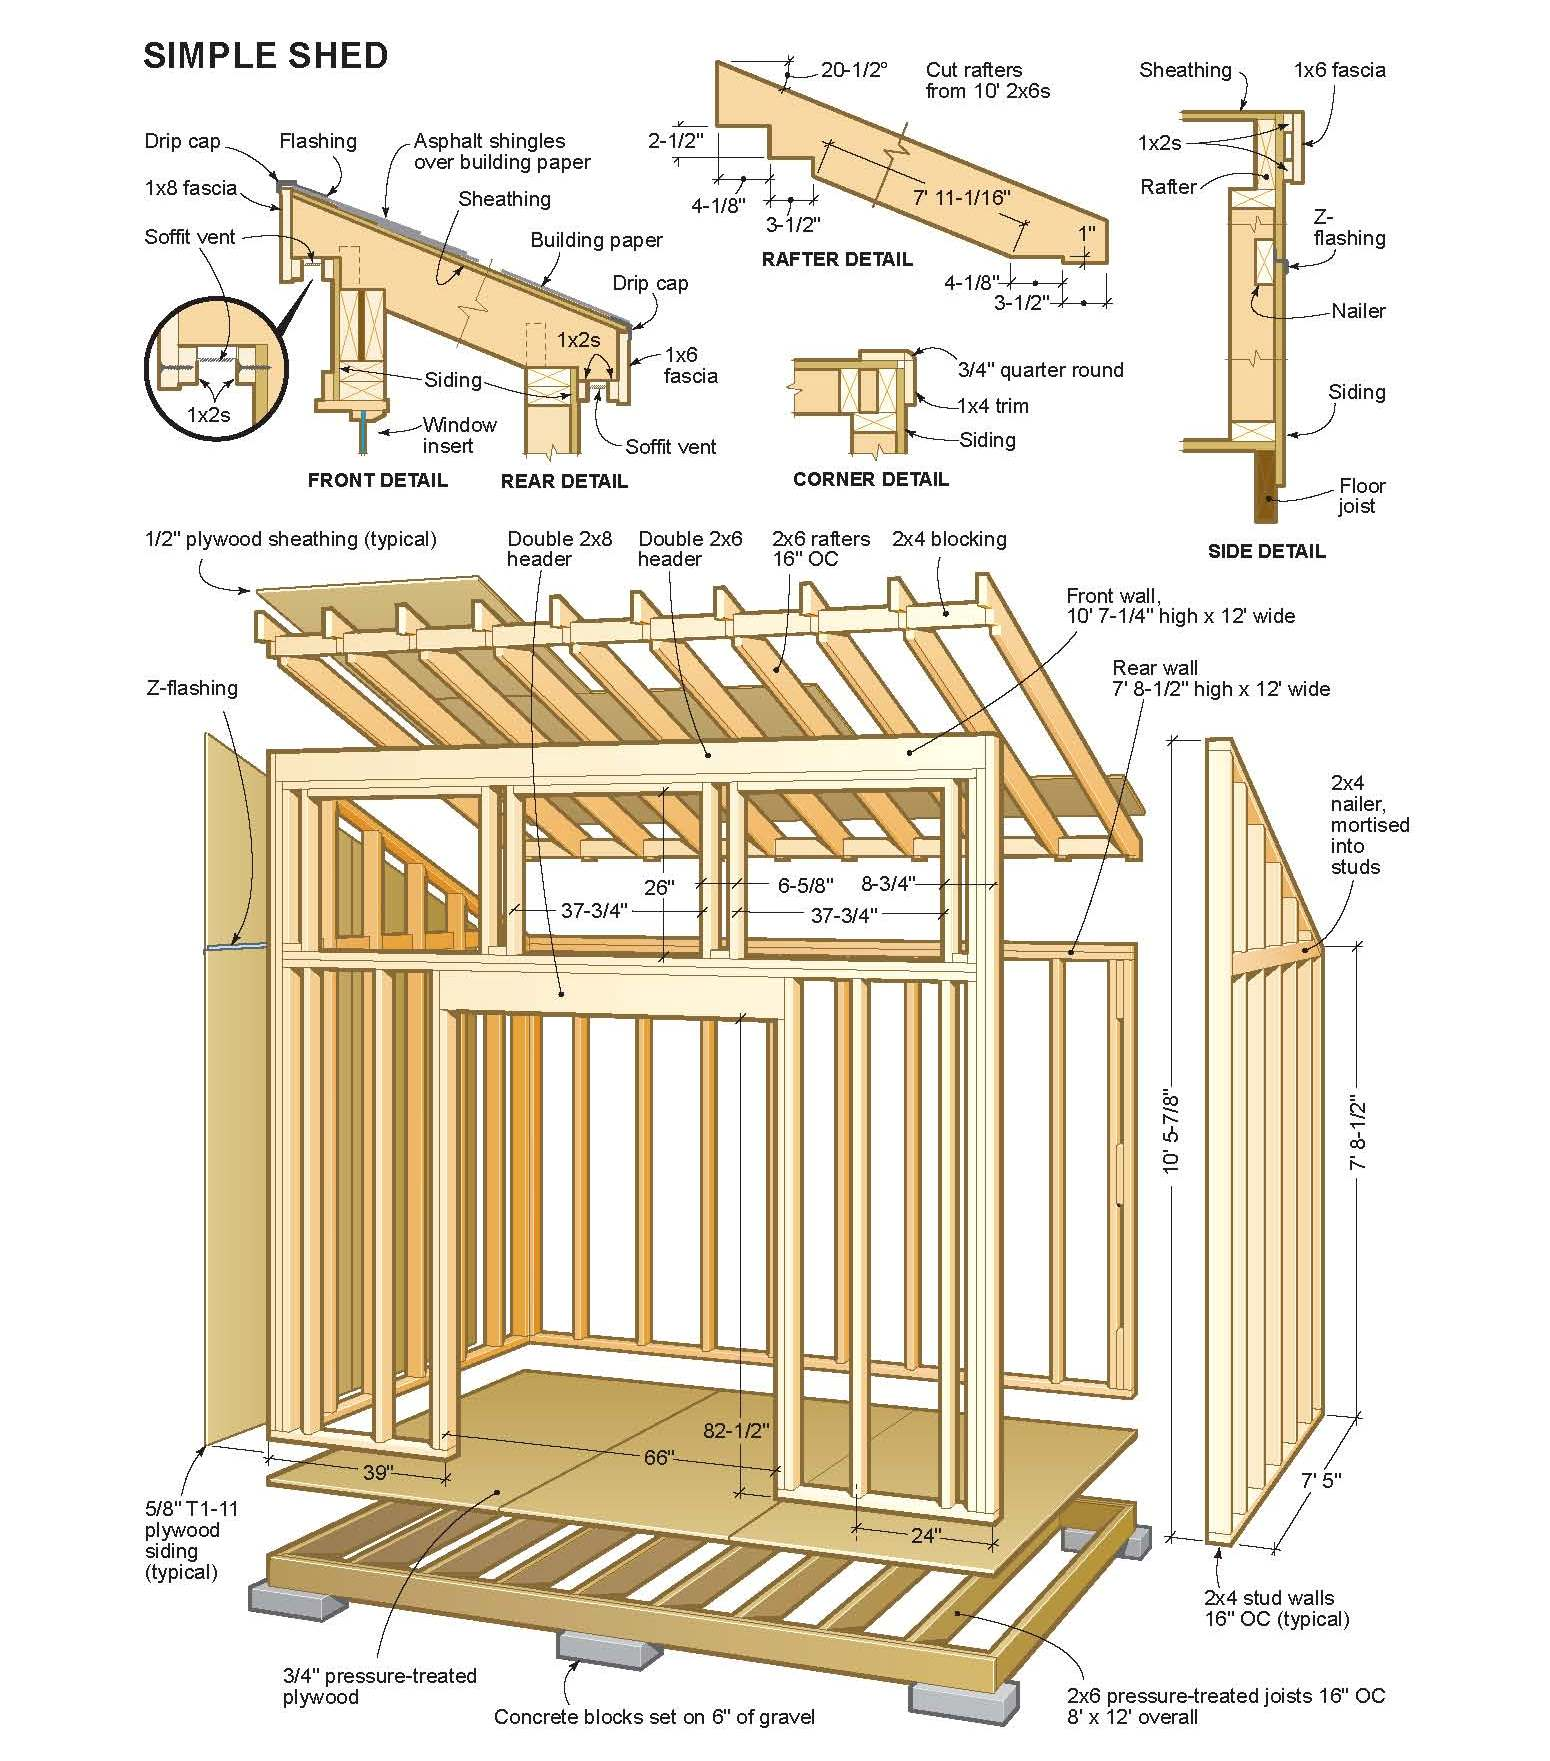 Shed building made easy with free shed plans cool shed for Create blueprints online free